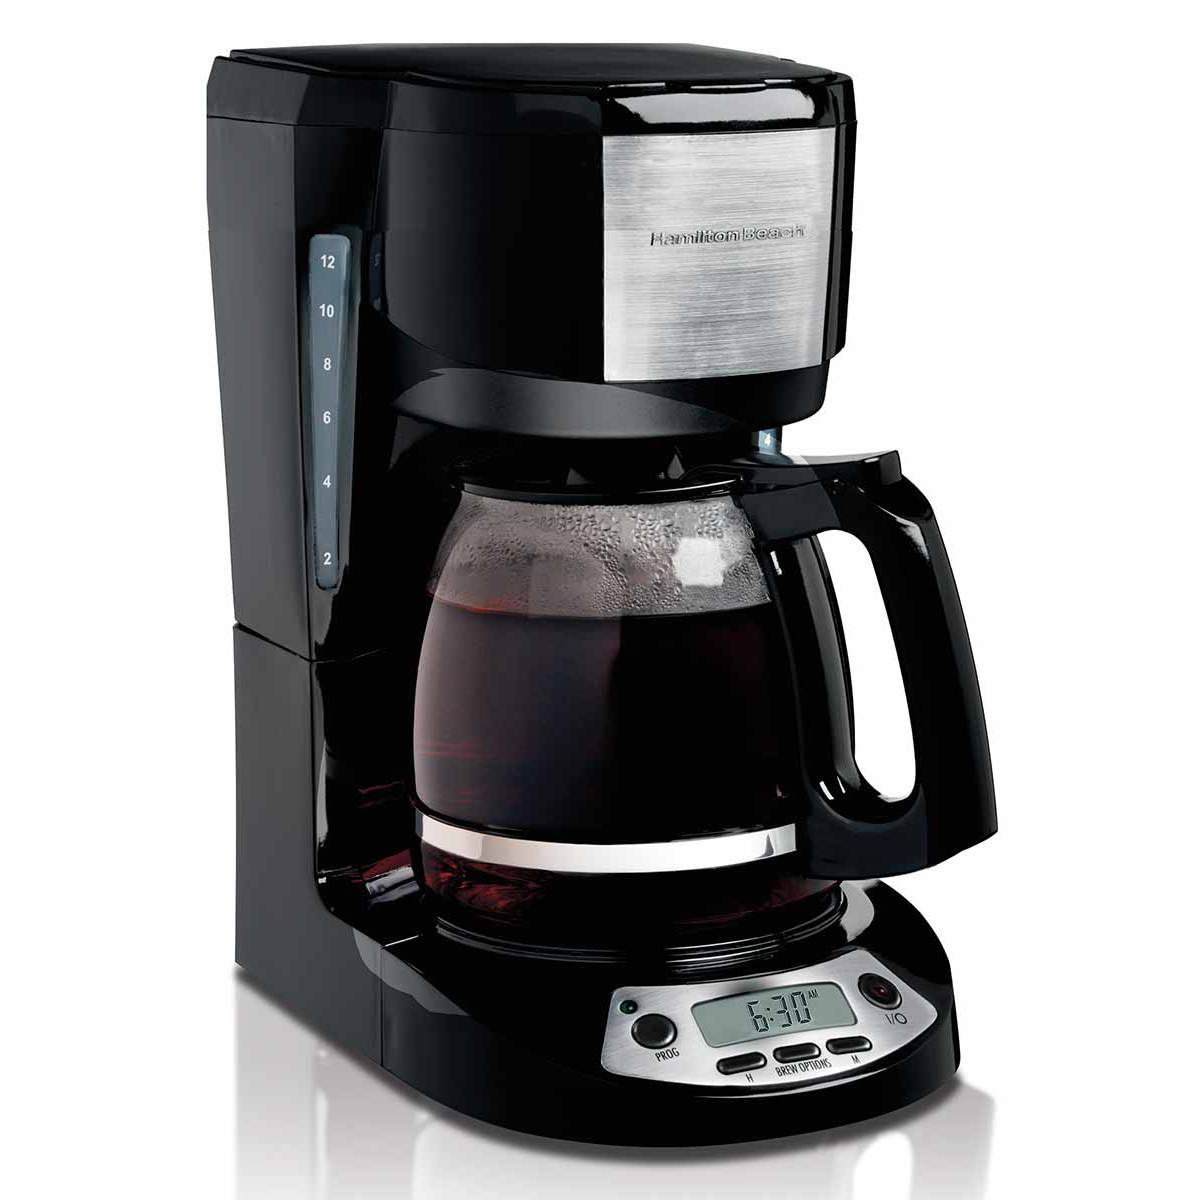 Hamilton Beach Coffee Maker with Clock - 12-Cup - 49615